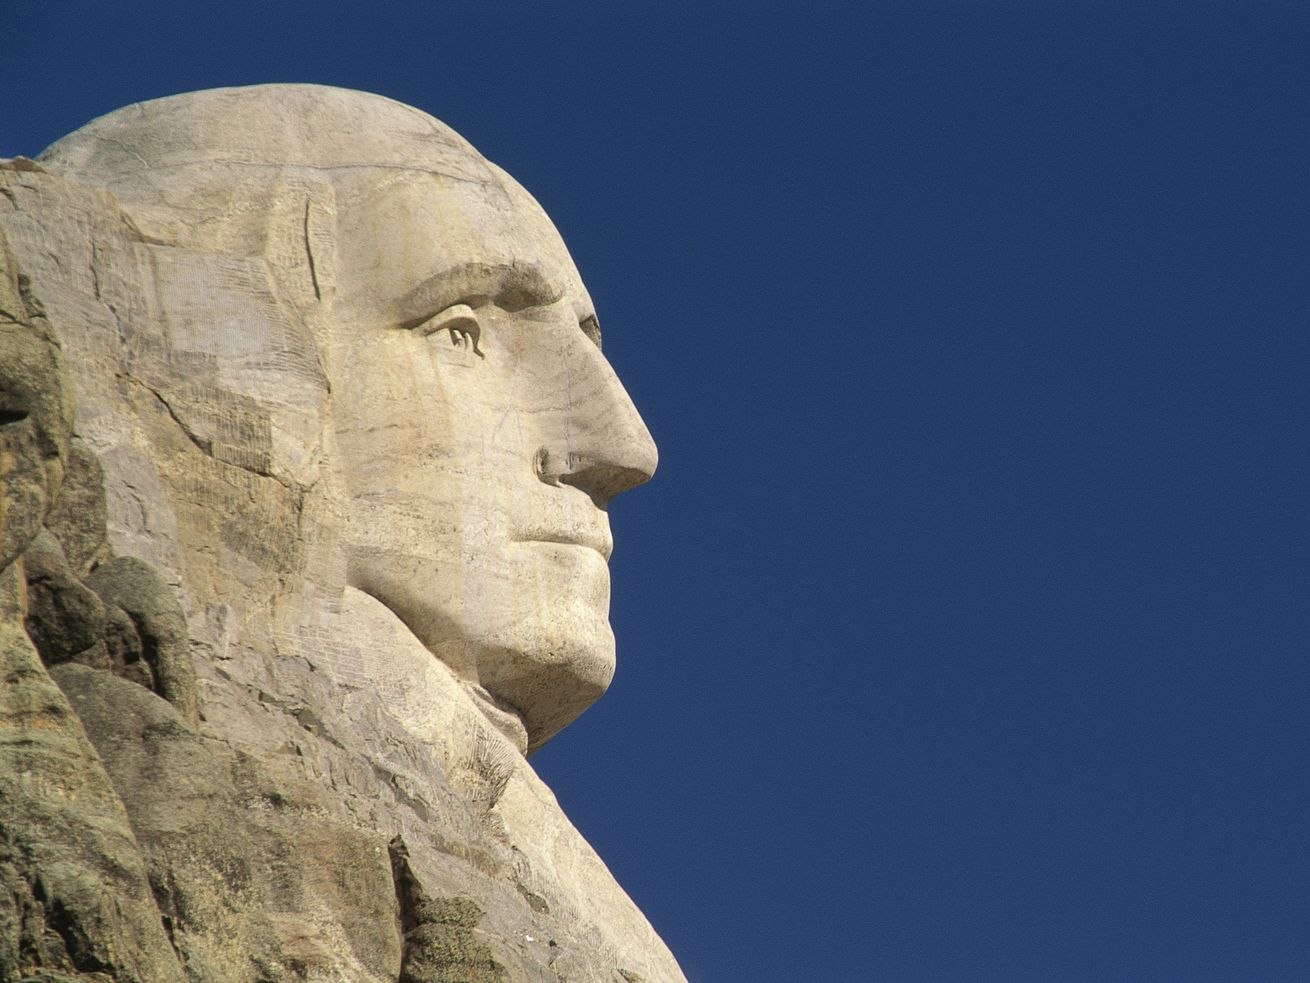 In our opinion: Washington's farewell address is more relevant to our time